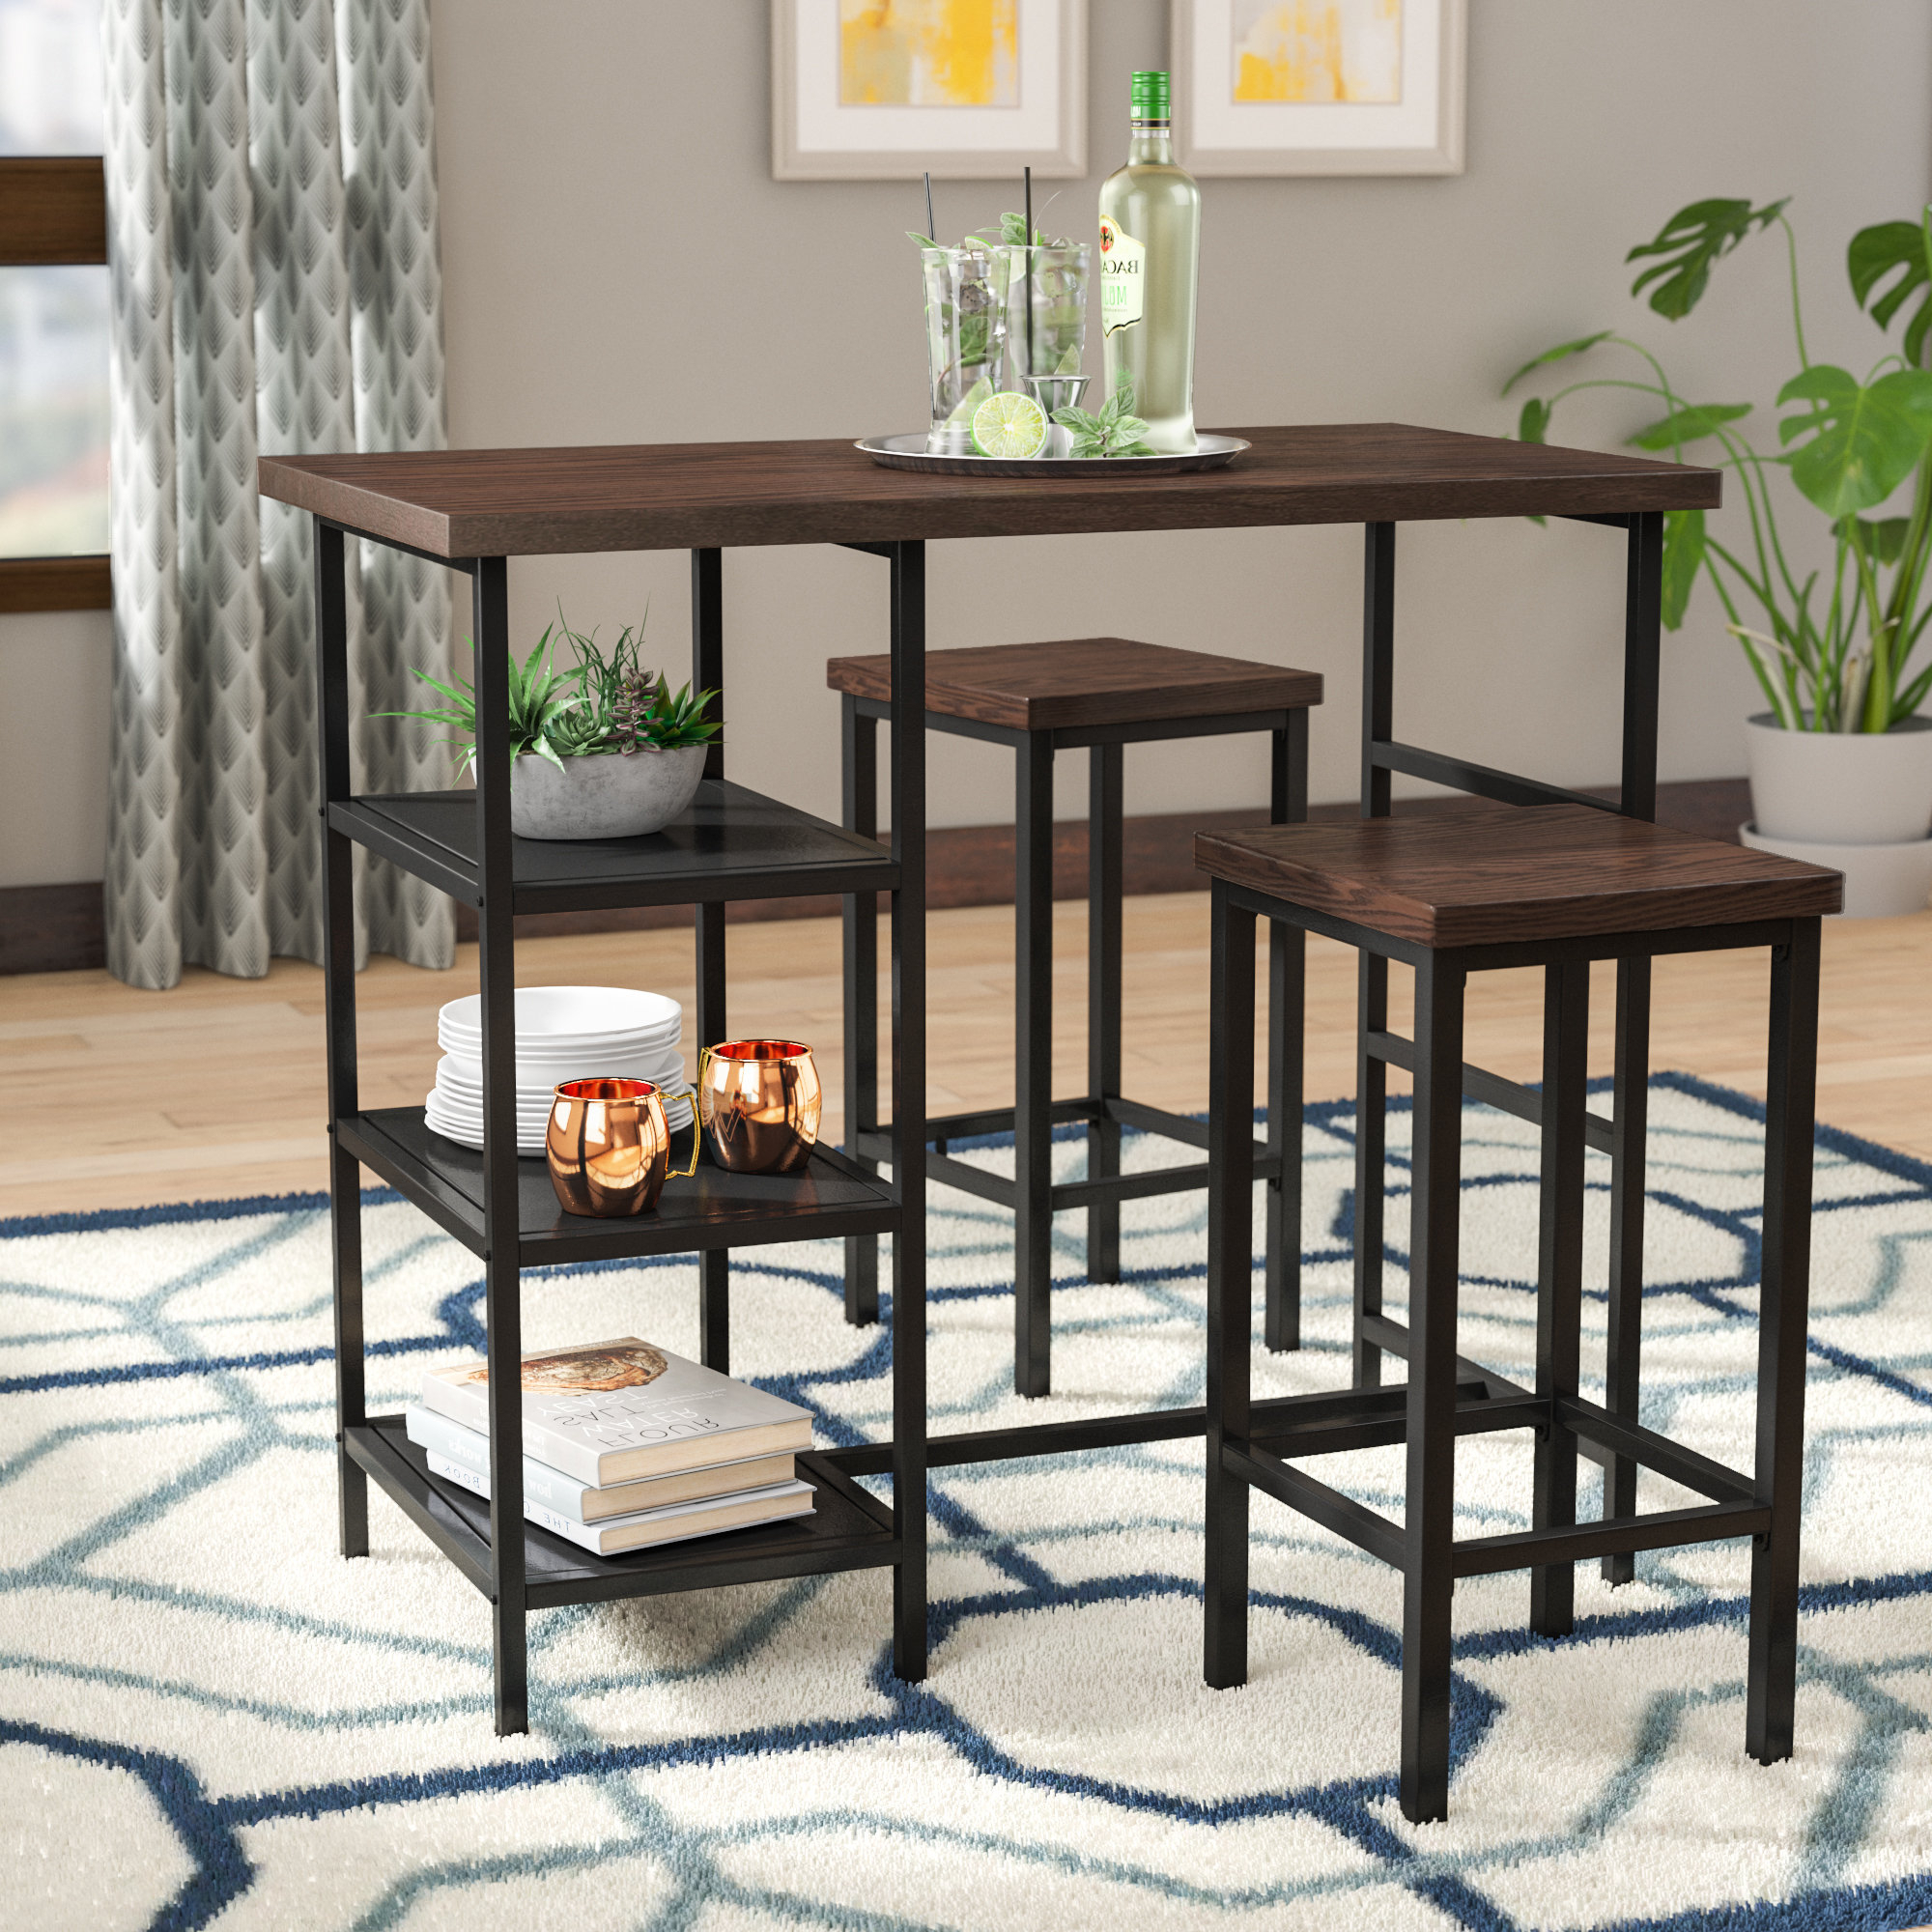 2019 Weatherholt Dining Tables Within Ivy Bronx Du Bois 3 Piece Pub Table Set & Reviews (View 1 of 25)